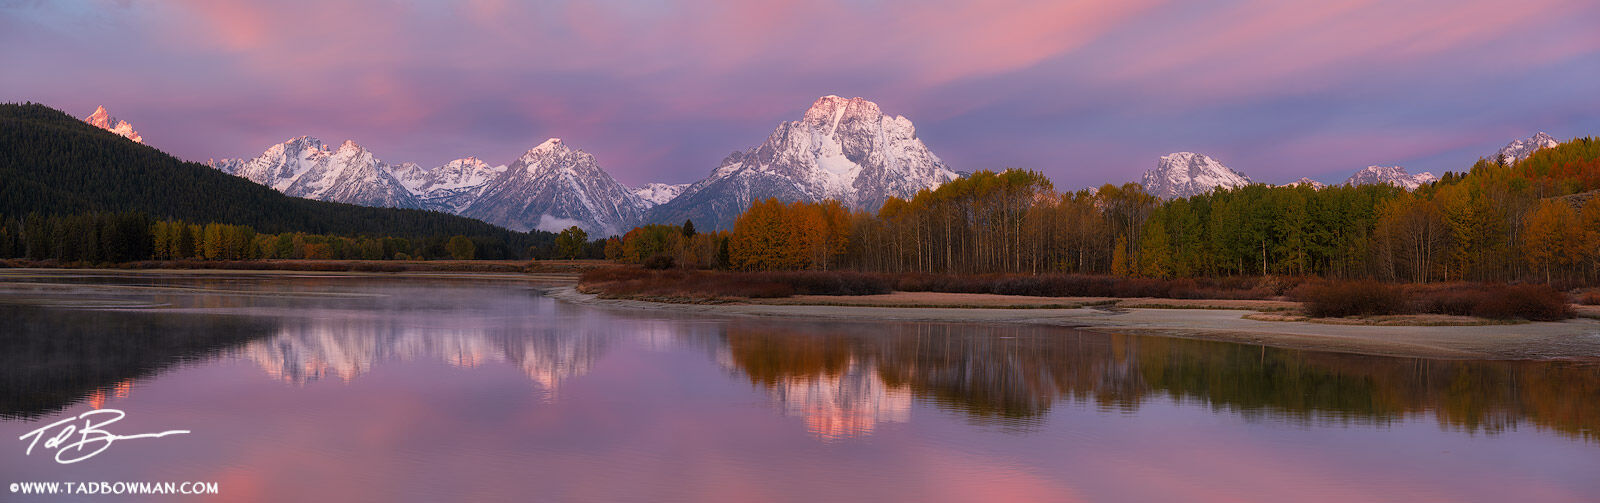 Wyoming, Grand Tetons, Grand Teton photos, Grand Teton fall photos, fall, autumn, fall foliage, Oxbow Bend, sunrise, snow, snowy, Grand Teton National Park Photos, Grand Tetons snow, photo